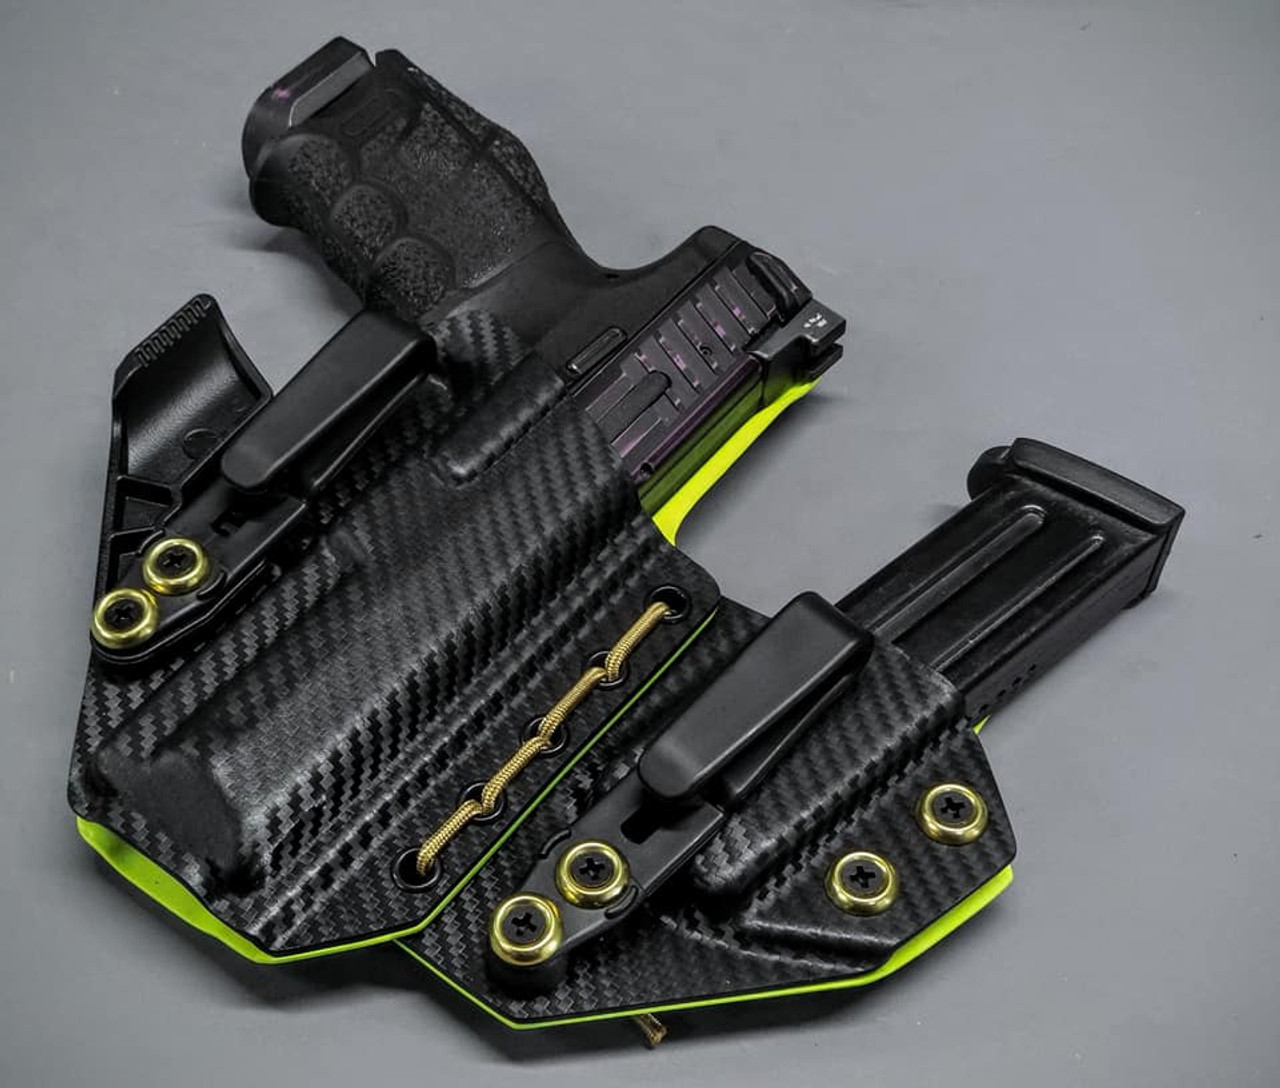 HK VP9 Appendix Carry Rig